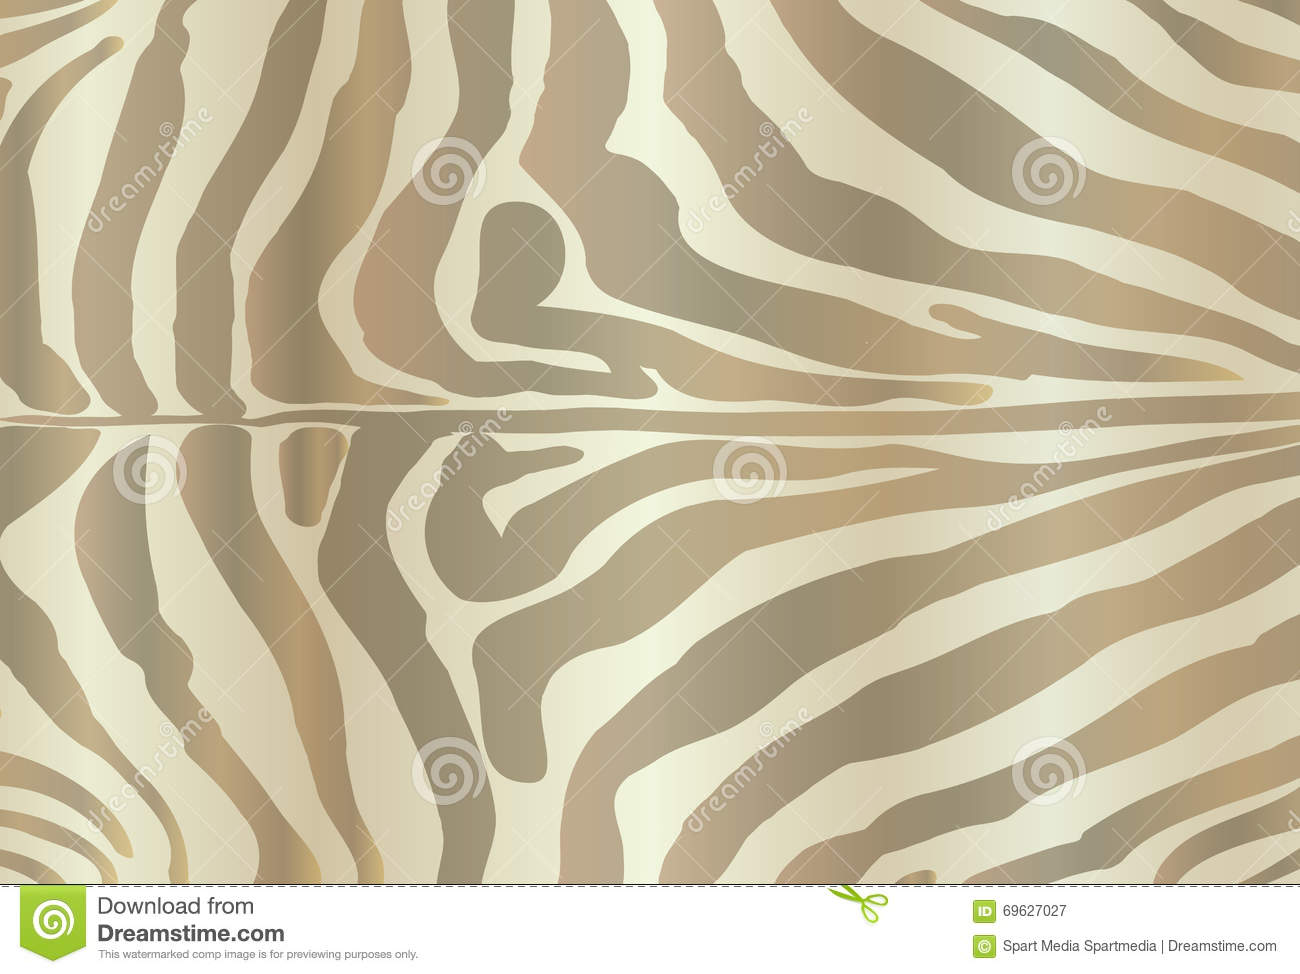 Safari ZEBRA Print Stock Vector Image Of Drawn Black